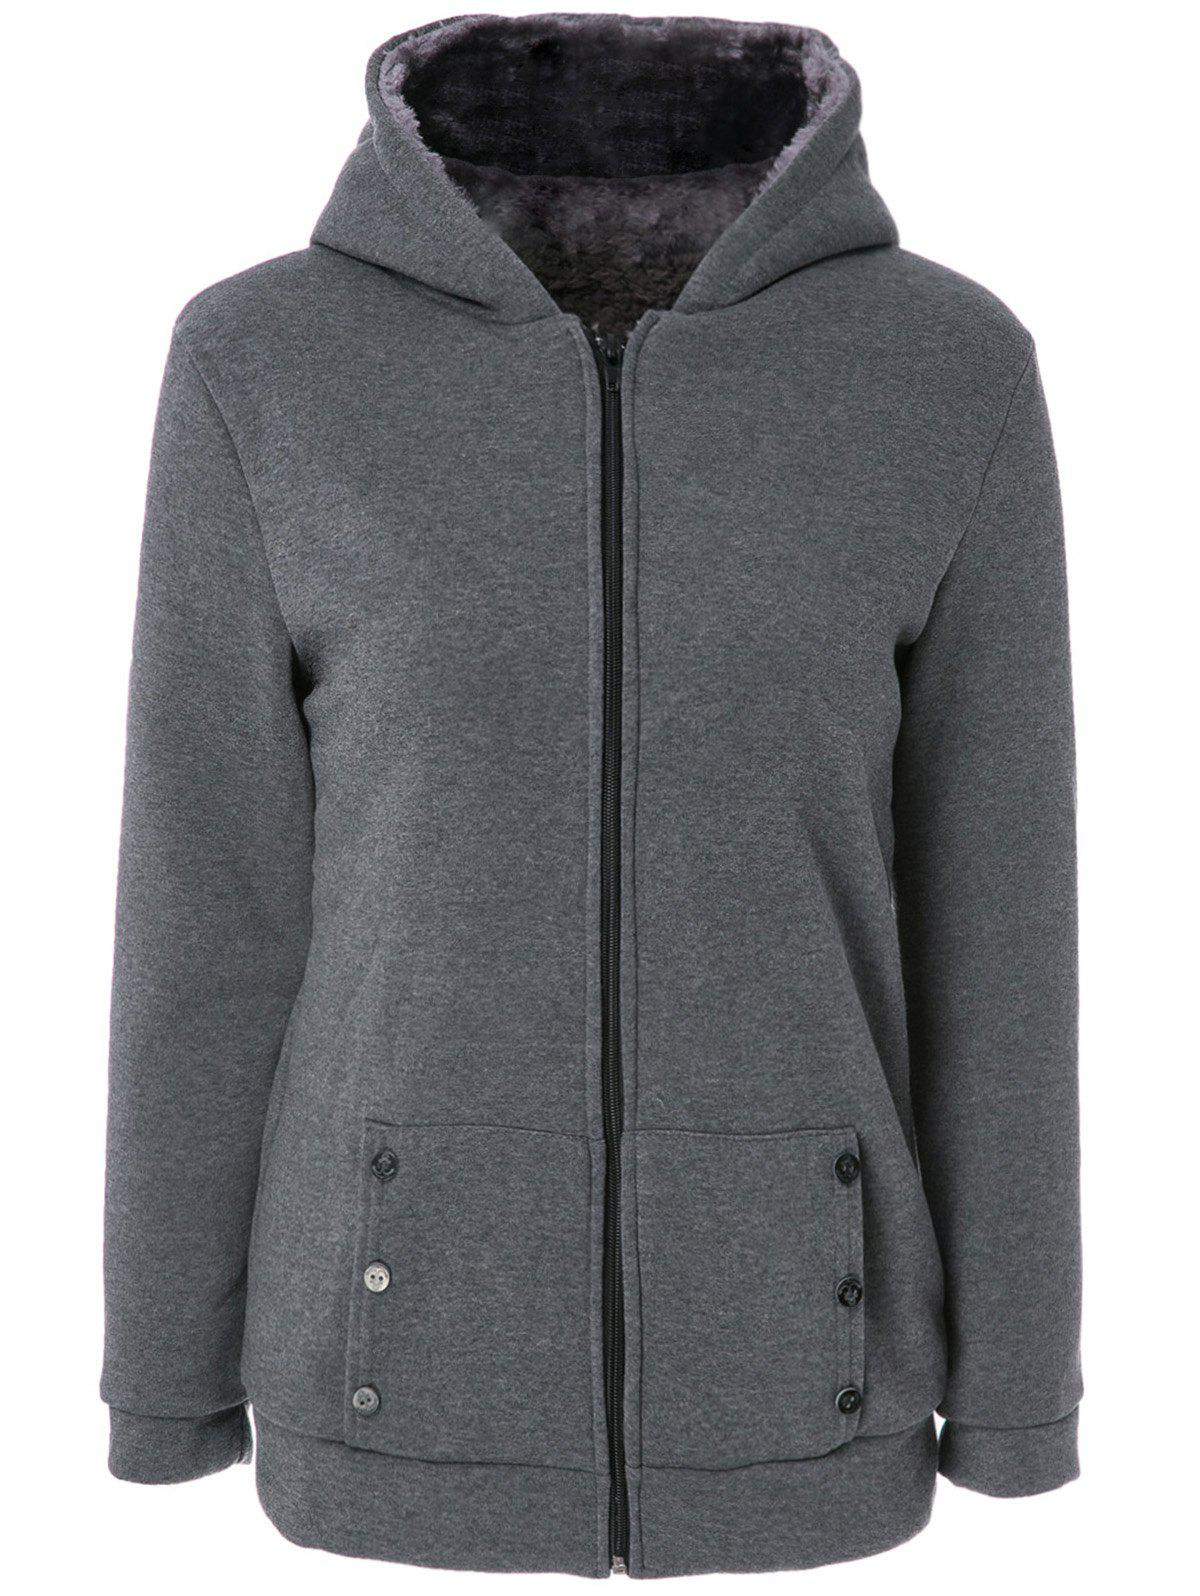 Stylish Women's Long Sleeves Solid Color Zippered Flocking Hoodie - DEEP GRAY M